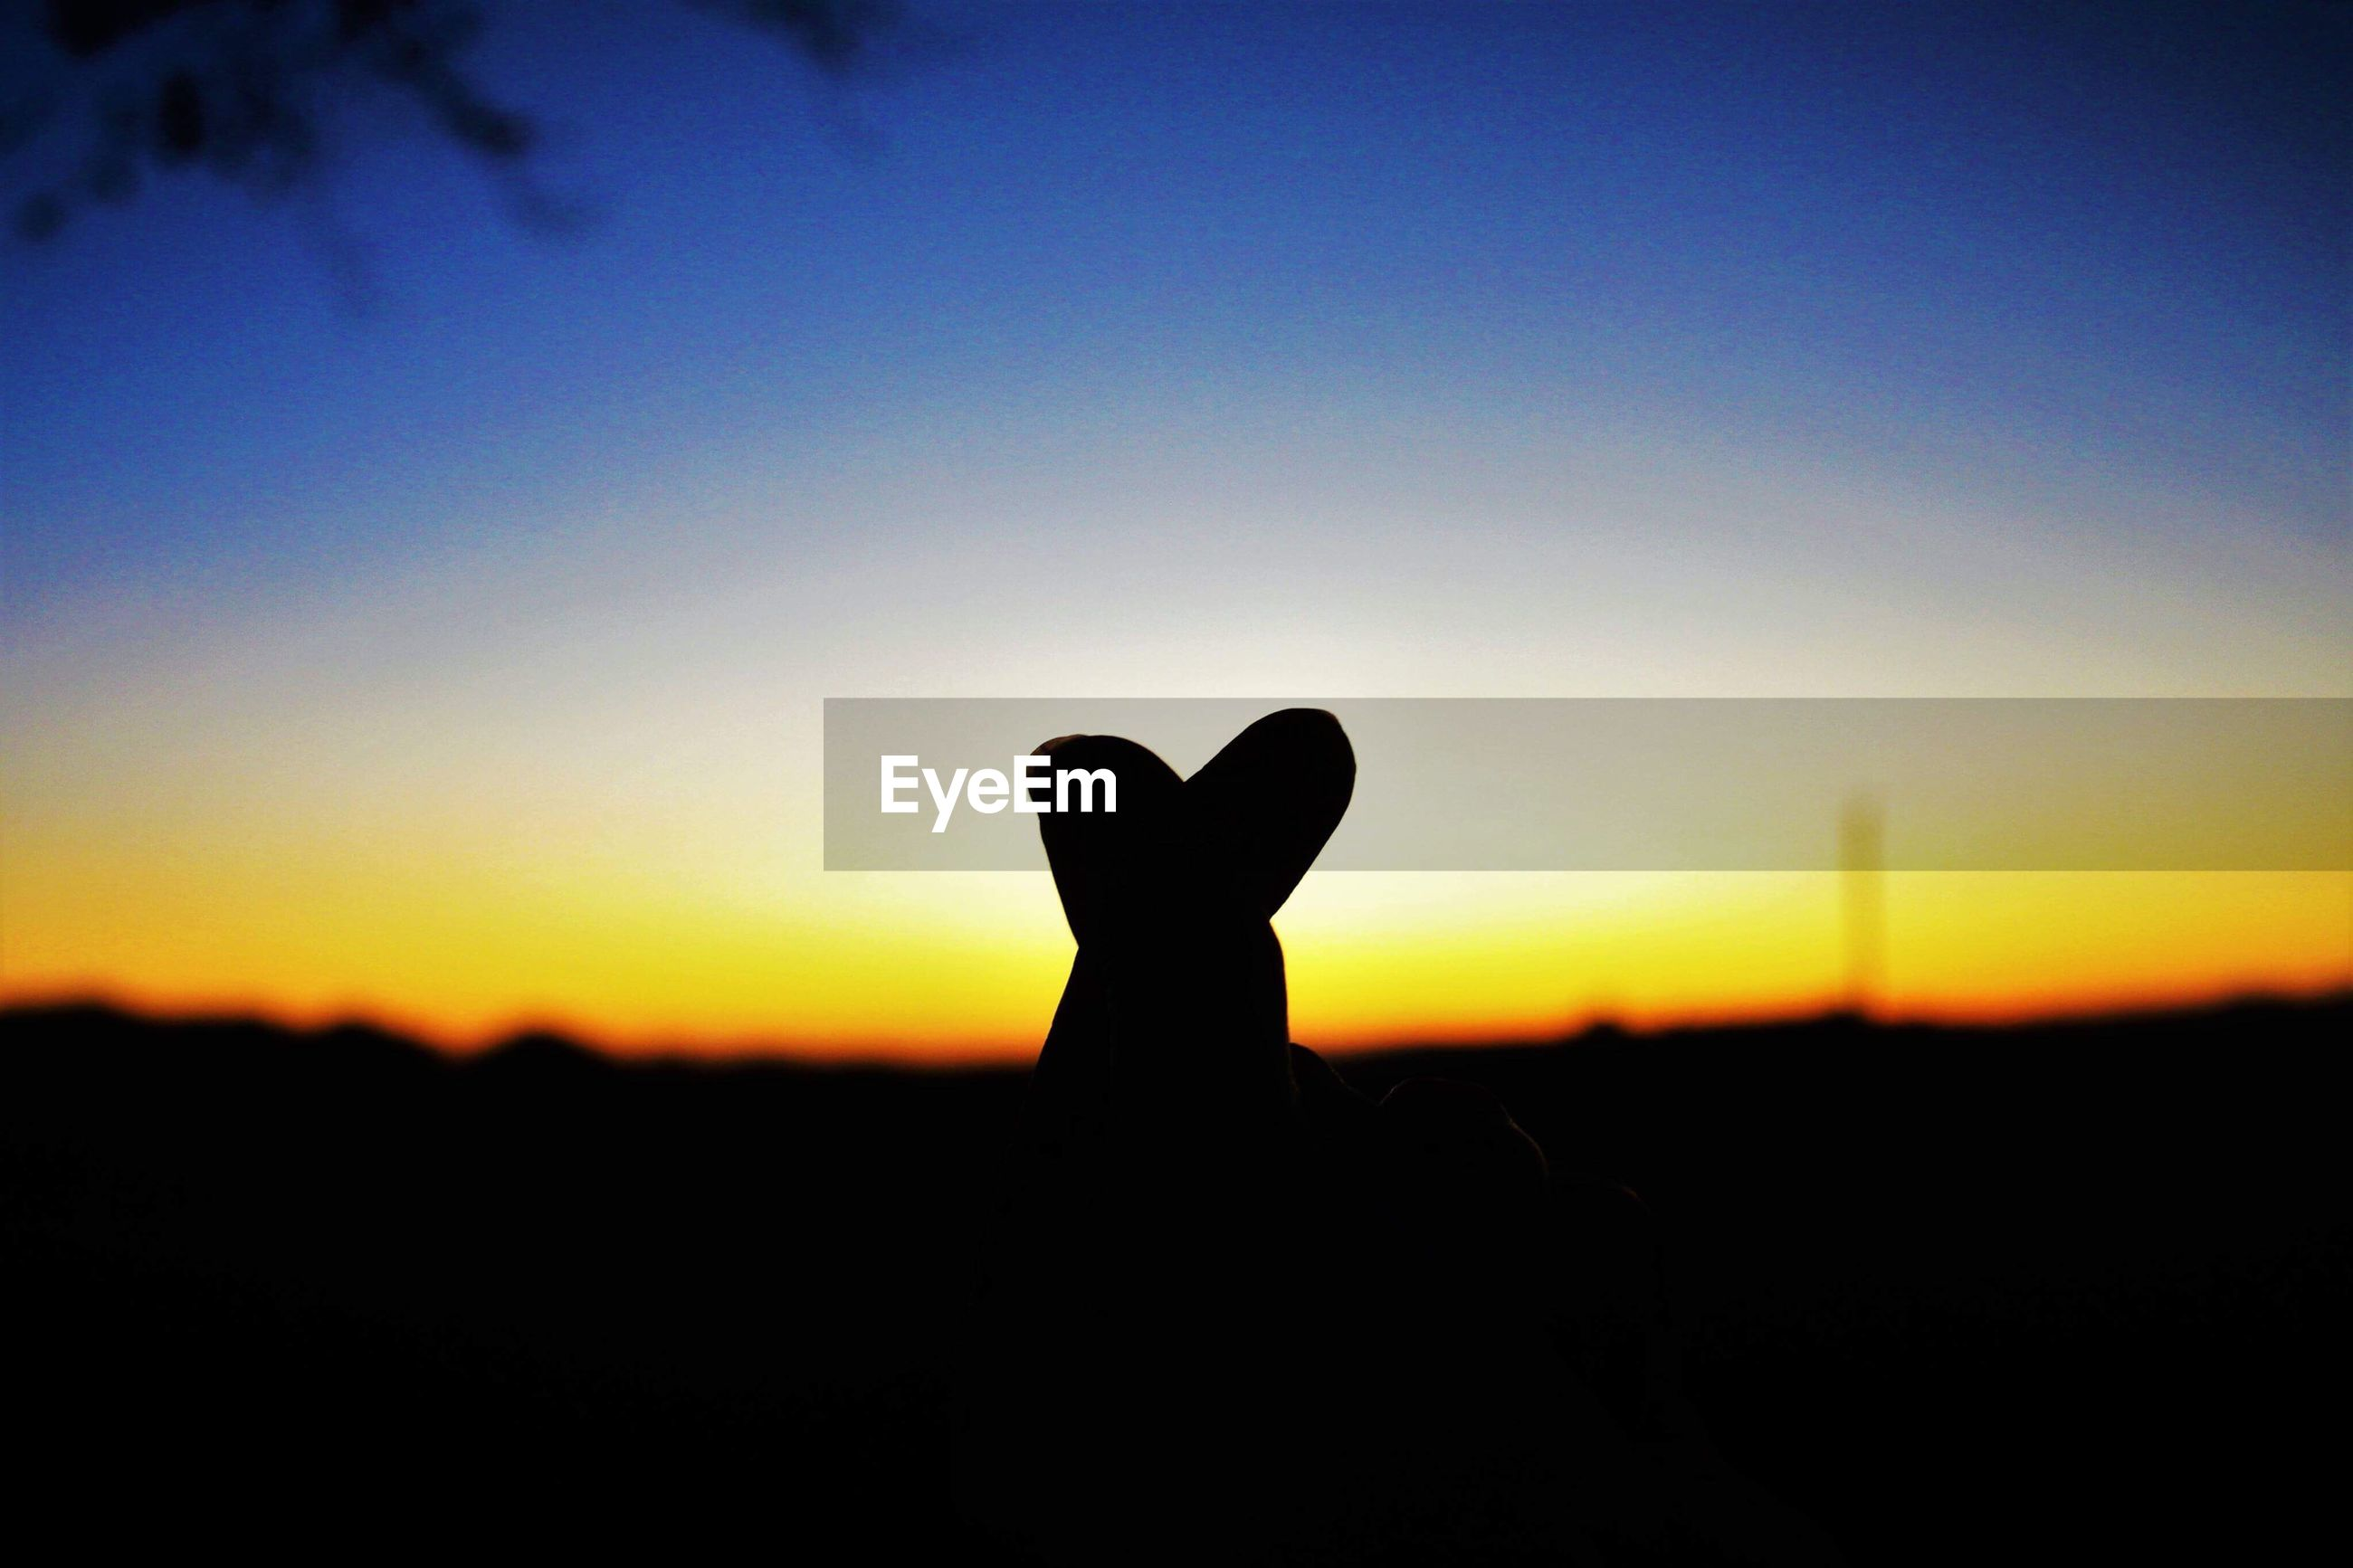 SILHOUETTE OF HAND AGAINST CLEAR SKY